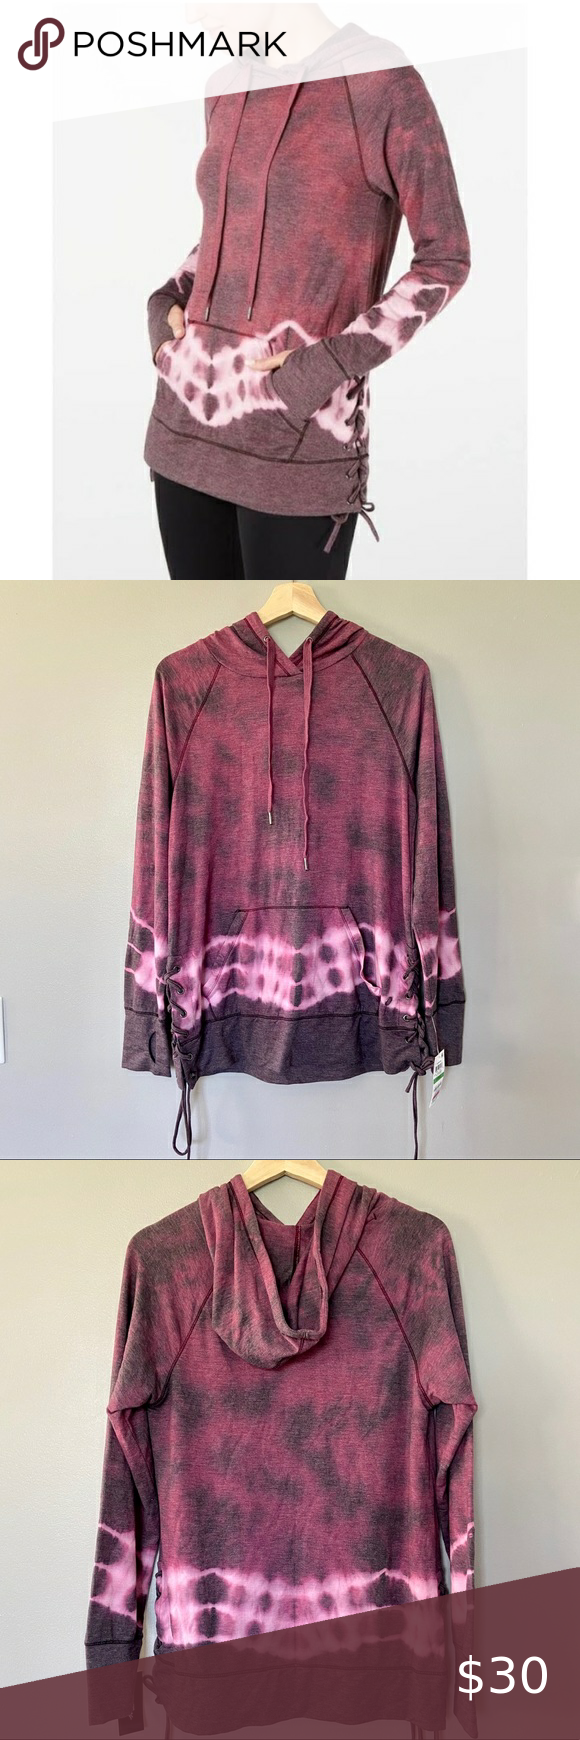 Ideology Tie Dyed Lace Up Hoodie With Thumb Holes Brand New With Tags Trendy And Comfy Features Beautiful Tie Dye Fabric Kan Tie Dye Fabric Tie Dyed Lace Up [ 1740 x 580 Pixel ]